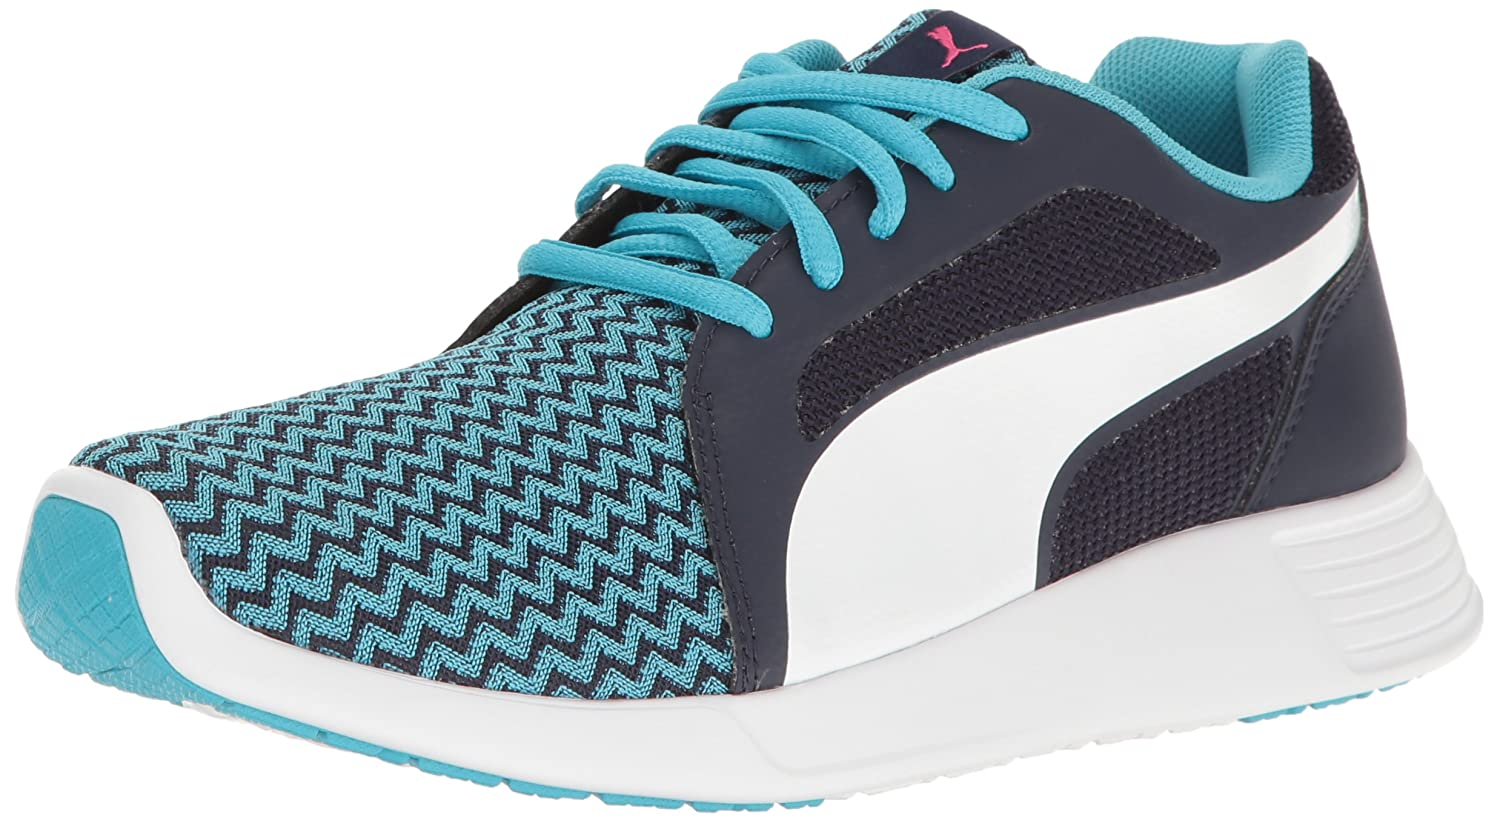 Puma Unisex-Kids St Trainer Evo Techtribe Turnschuhe, Blau Atoll Weiß, 5 M US Big Kid